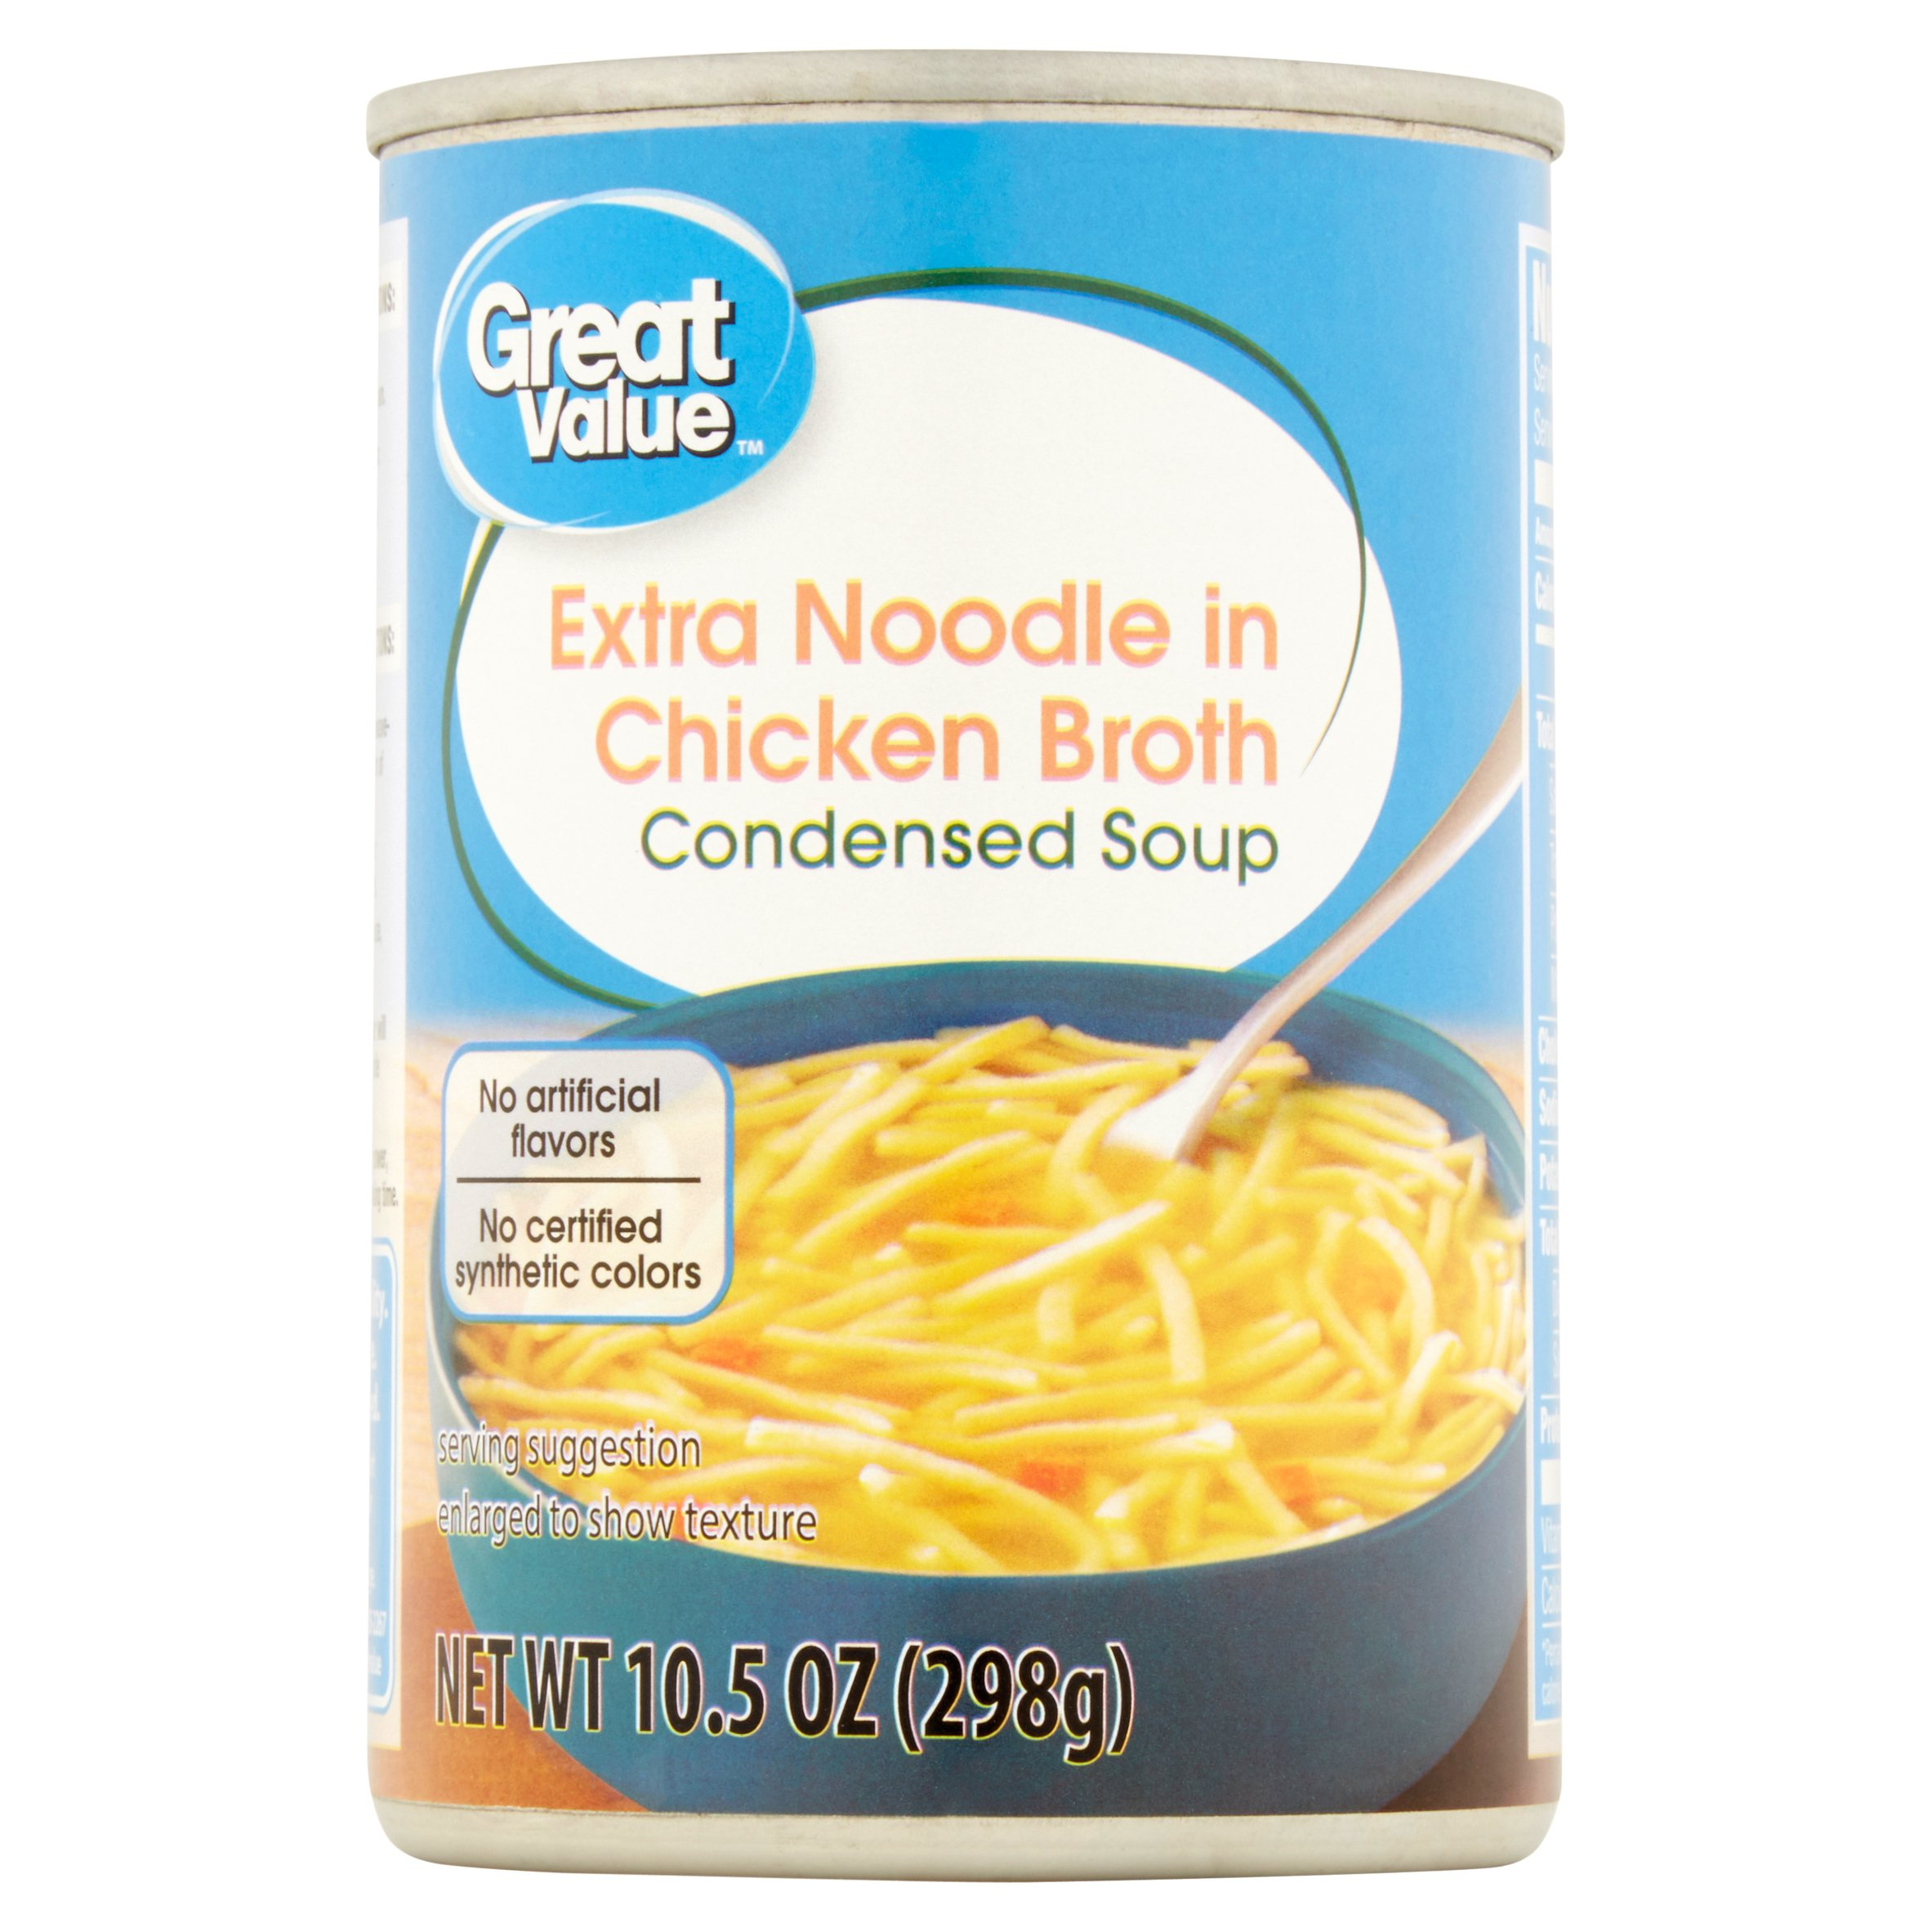 Great Value Extra Noodle in Chicken Broth Condensed Soup, 10.5 oz